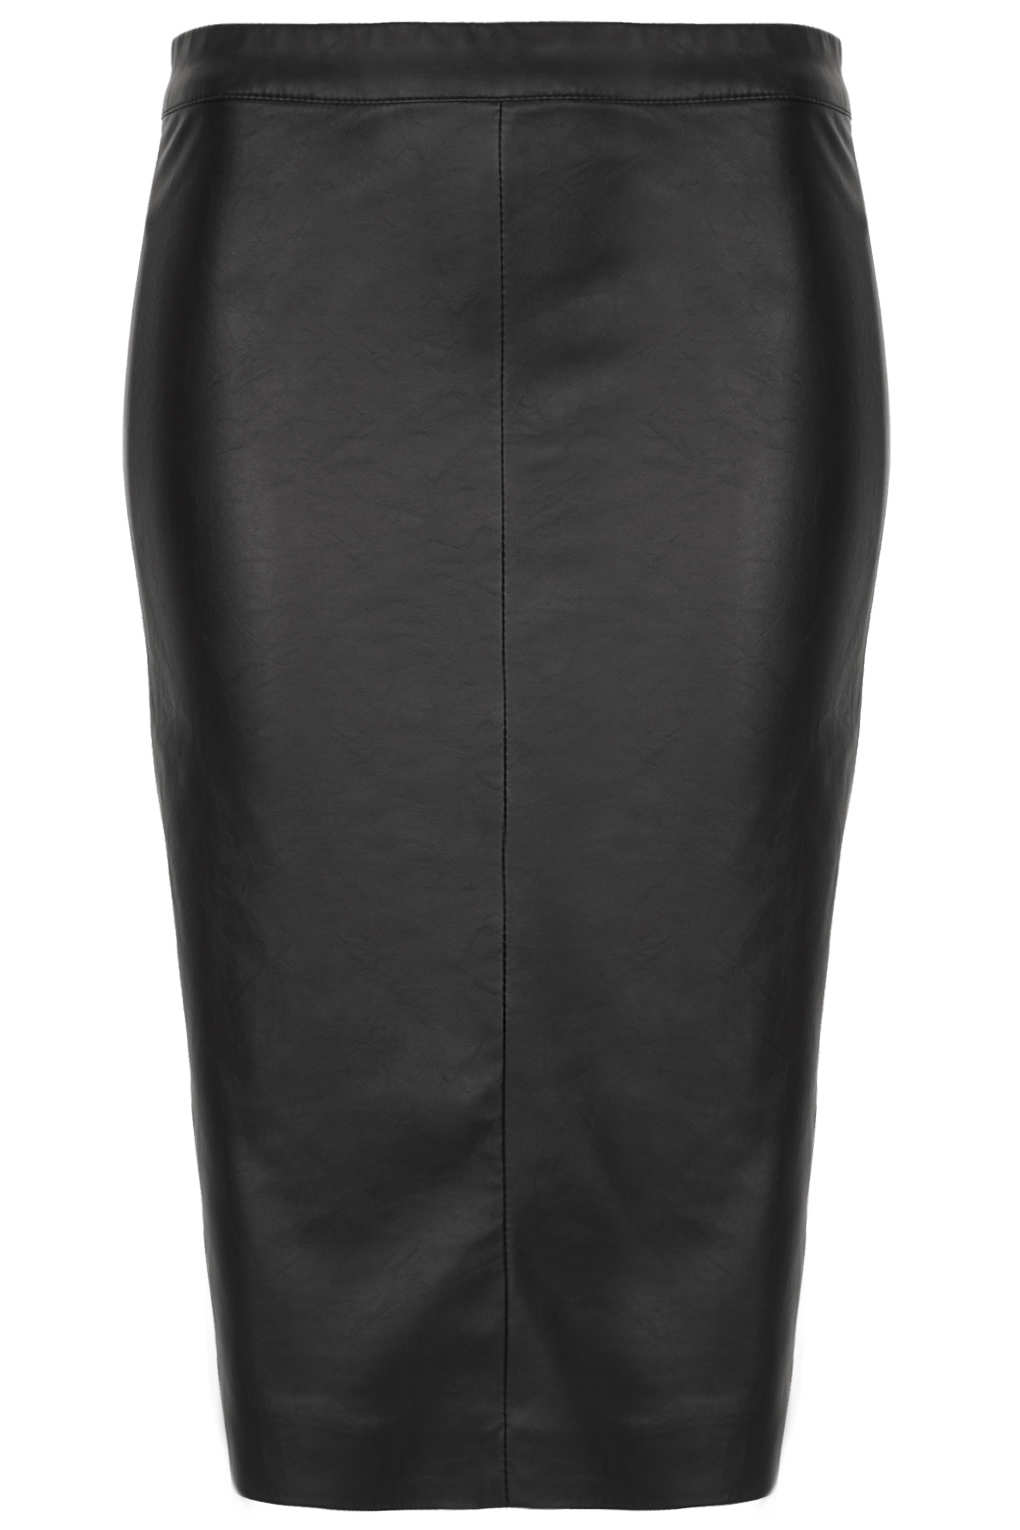 Topshop Tall Black Panel Pencil Skirt in Black | Lyst